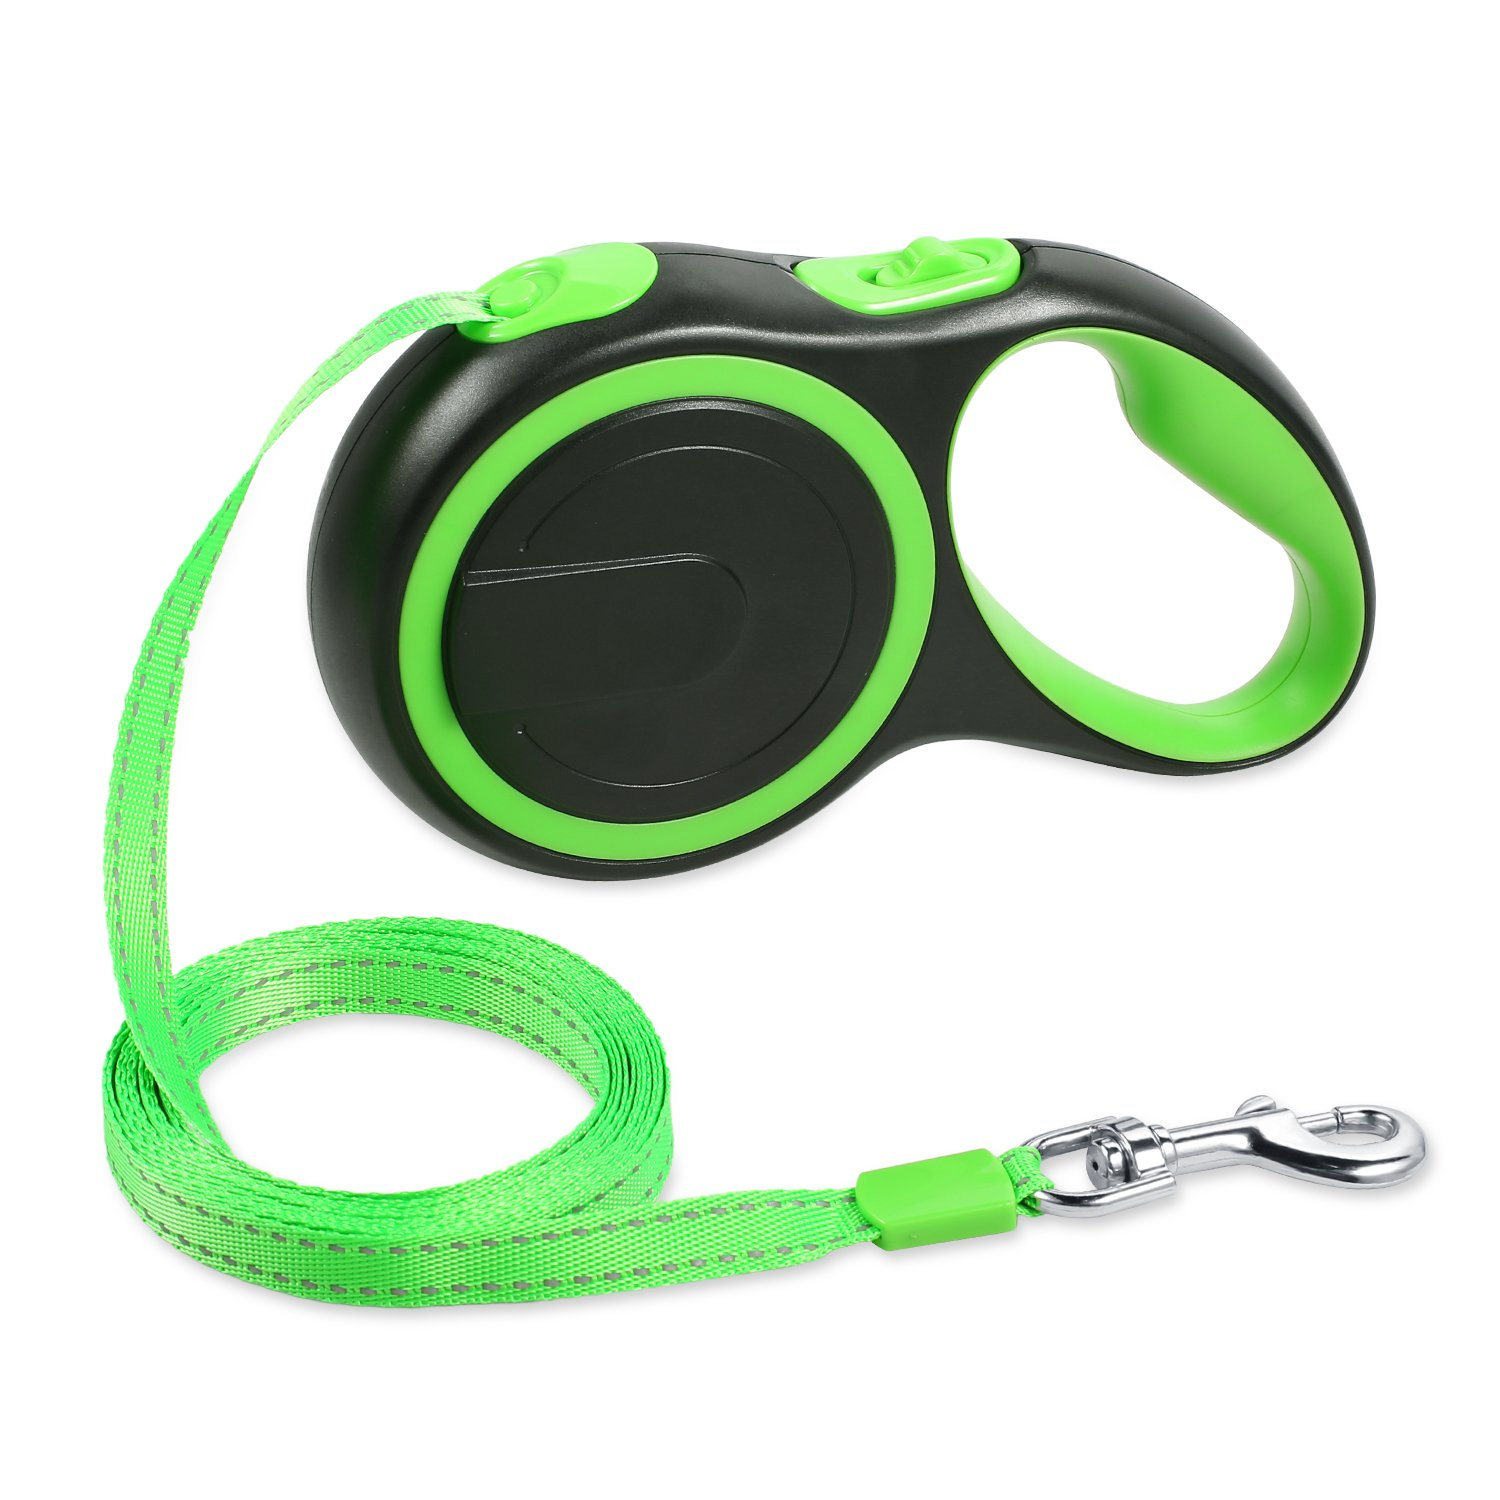 Retractable Dog Leash, 16 ft Dog Walking Leash for Small & Medium Dogs up to 55lbs, Retractable Dog Leash Puppies, Tangle Free, Anti-Slip Handle, One Button Break & Lock, Reflective Retractable Leash